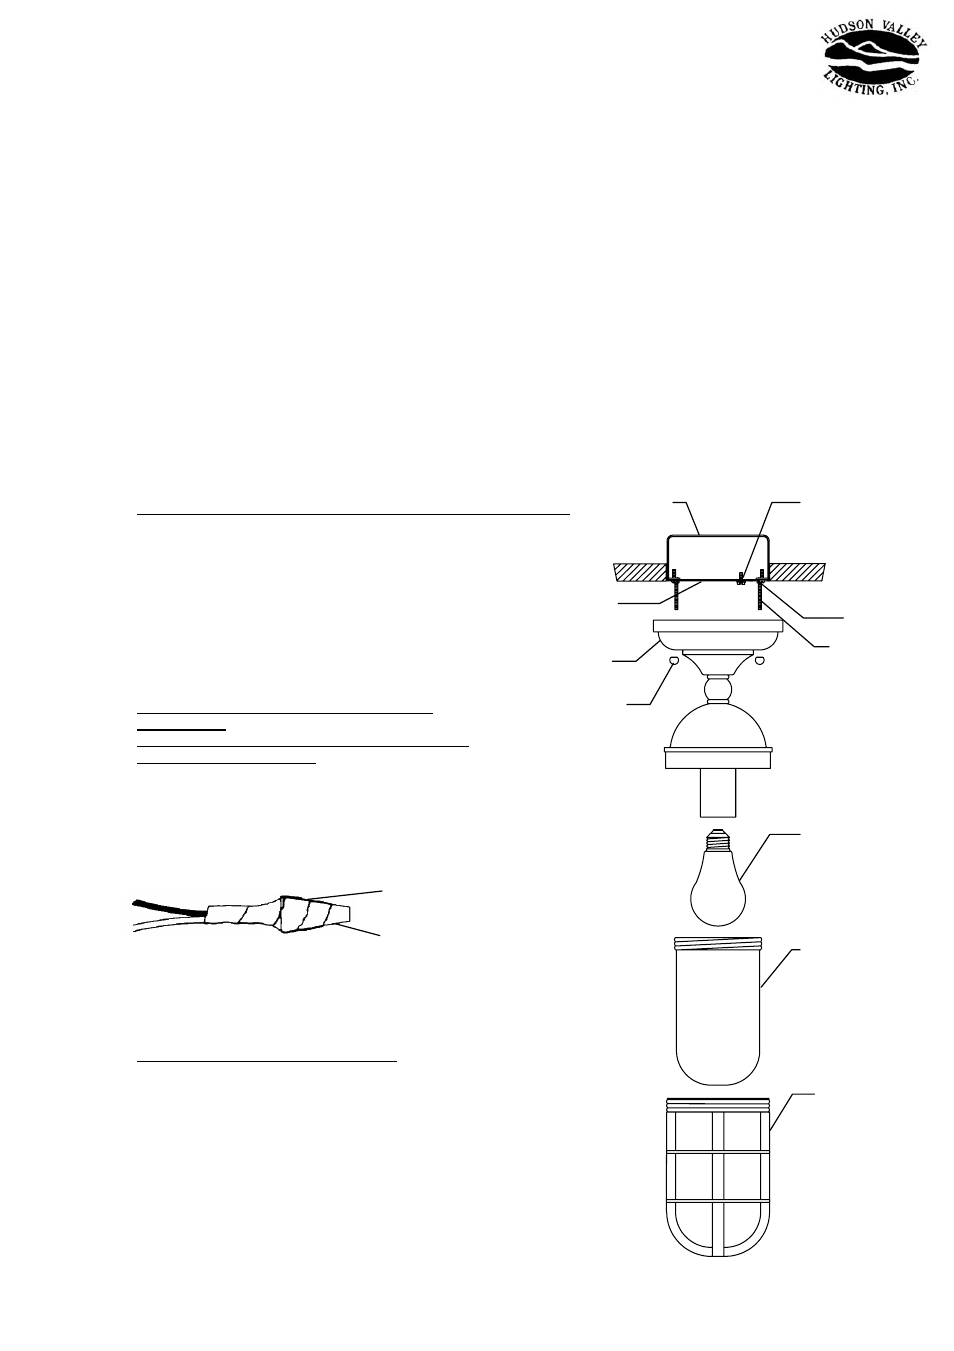 Hudson Valley Lighting Groton 3011 User Manual 1 Page Wiring A Light Fixture From An Outlet